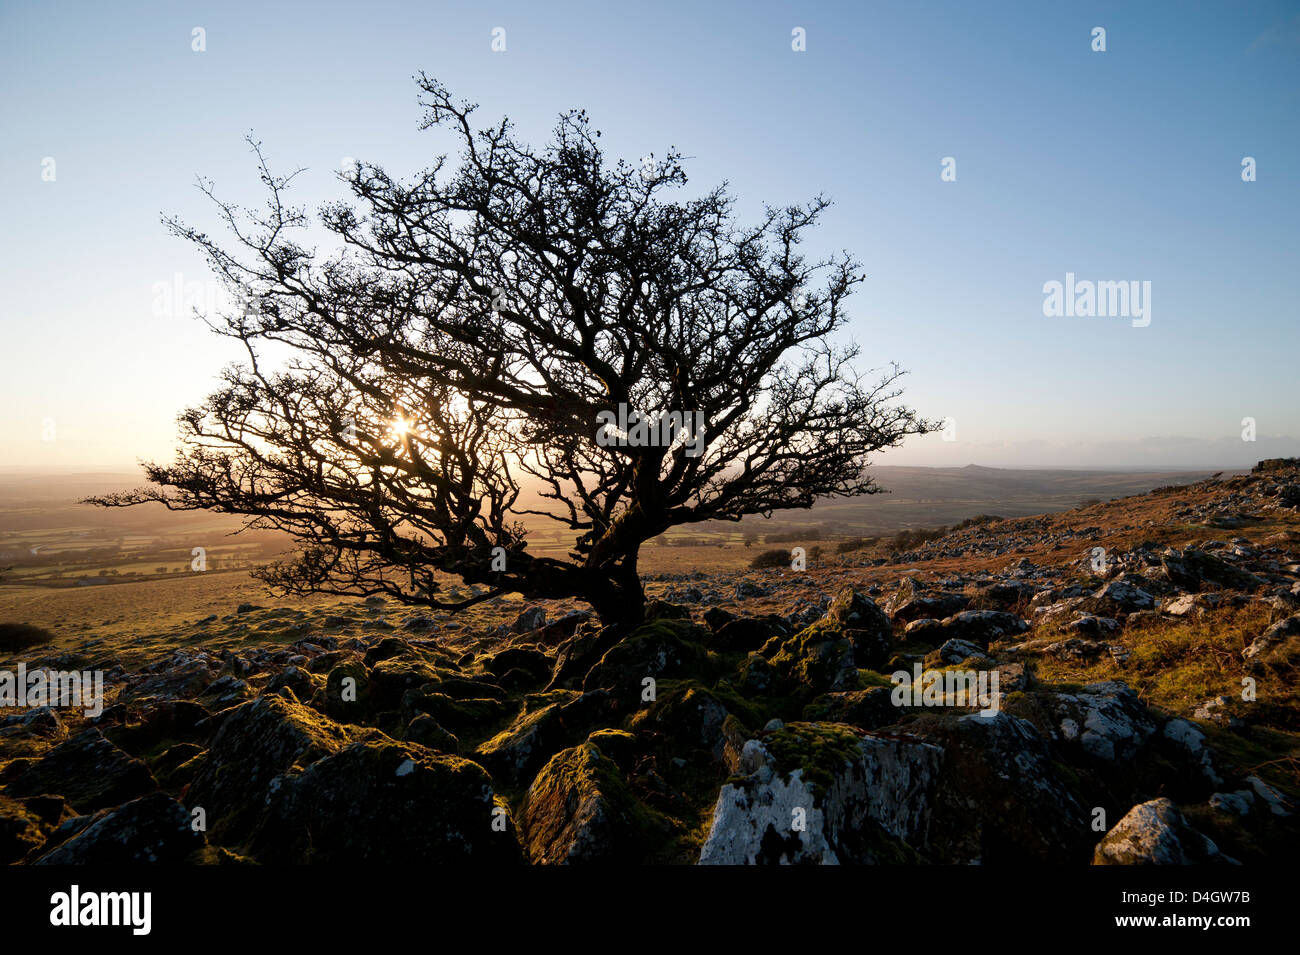 Stunted tree on Dartmoor, Devon, England, UK - Stock Image